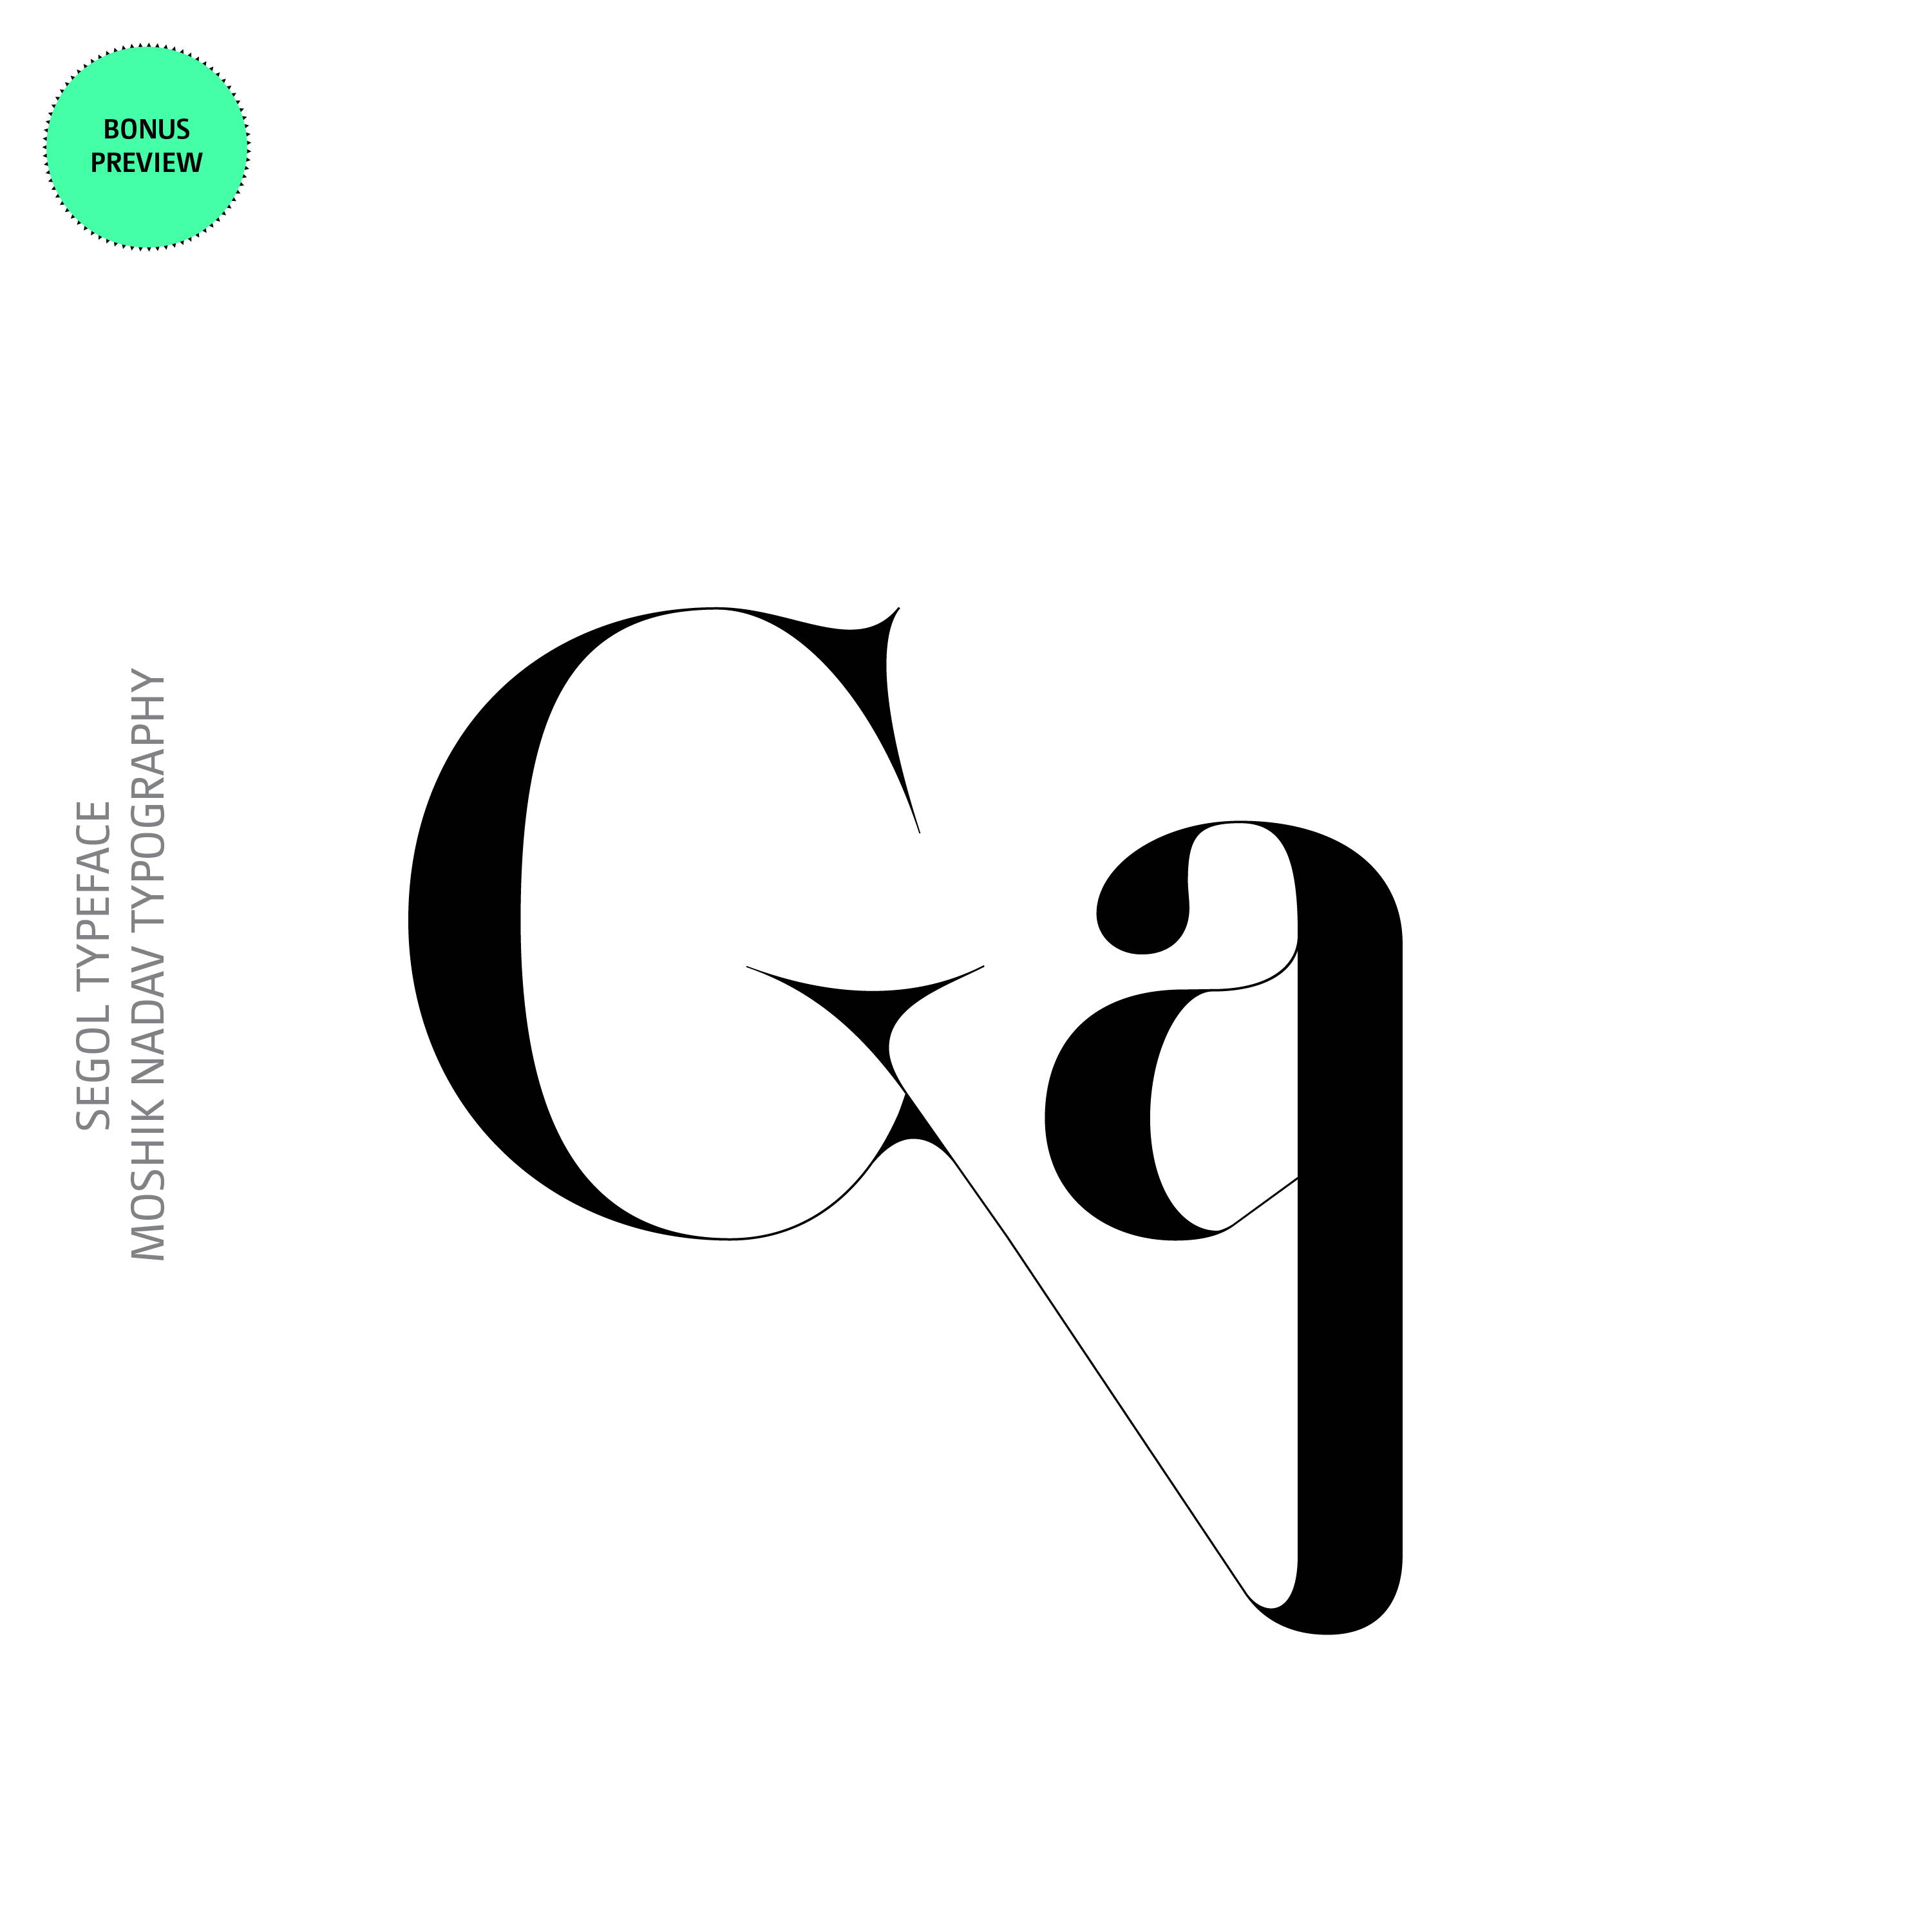 Segol Typeface The Ultimate Font For Fashion Typography and sexy logos